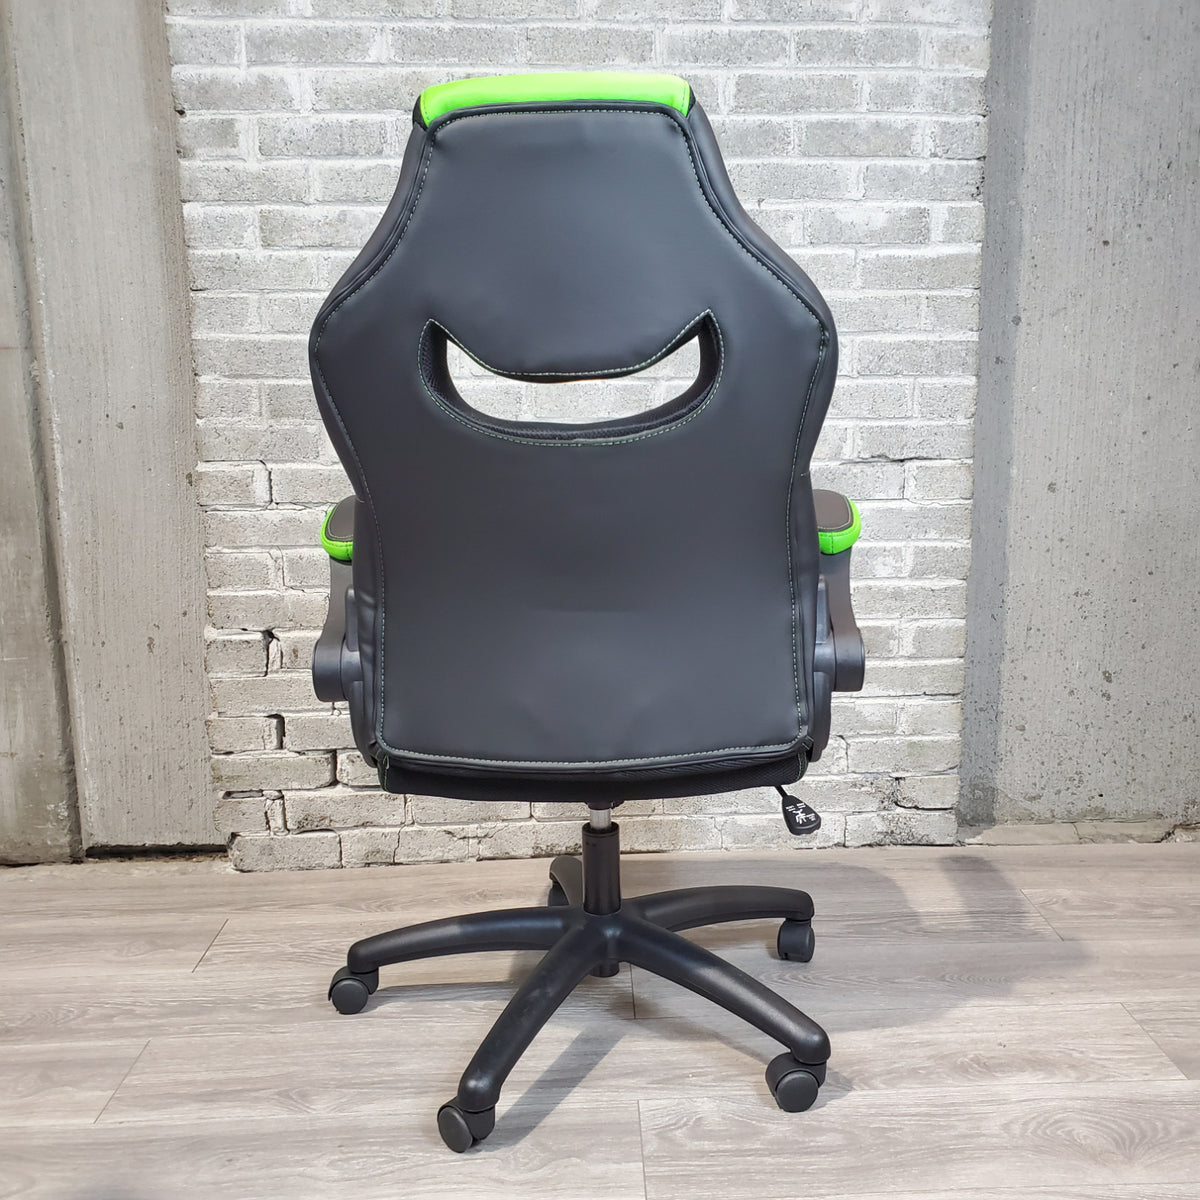 HON - IN STOCK Sadie Racing Style Bonded Leather Gaming Chair, Black/Green SPECIAL - Duckys Office Furniture